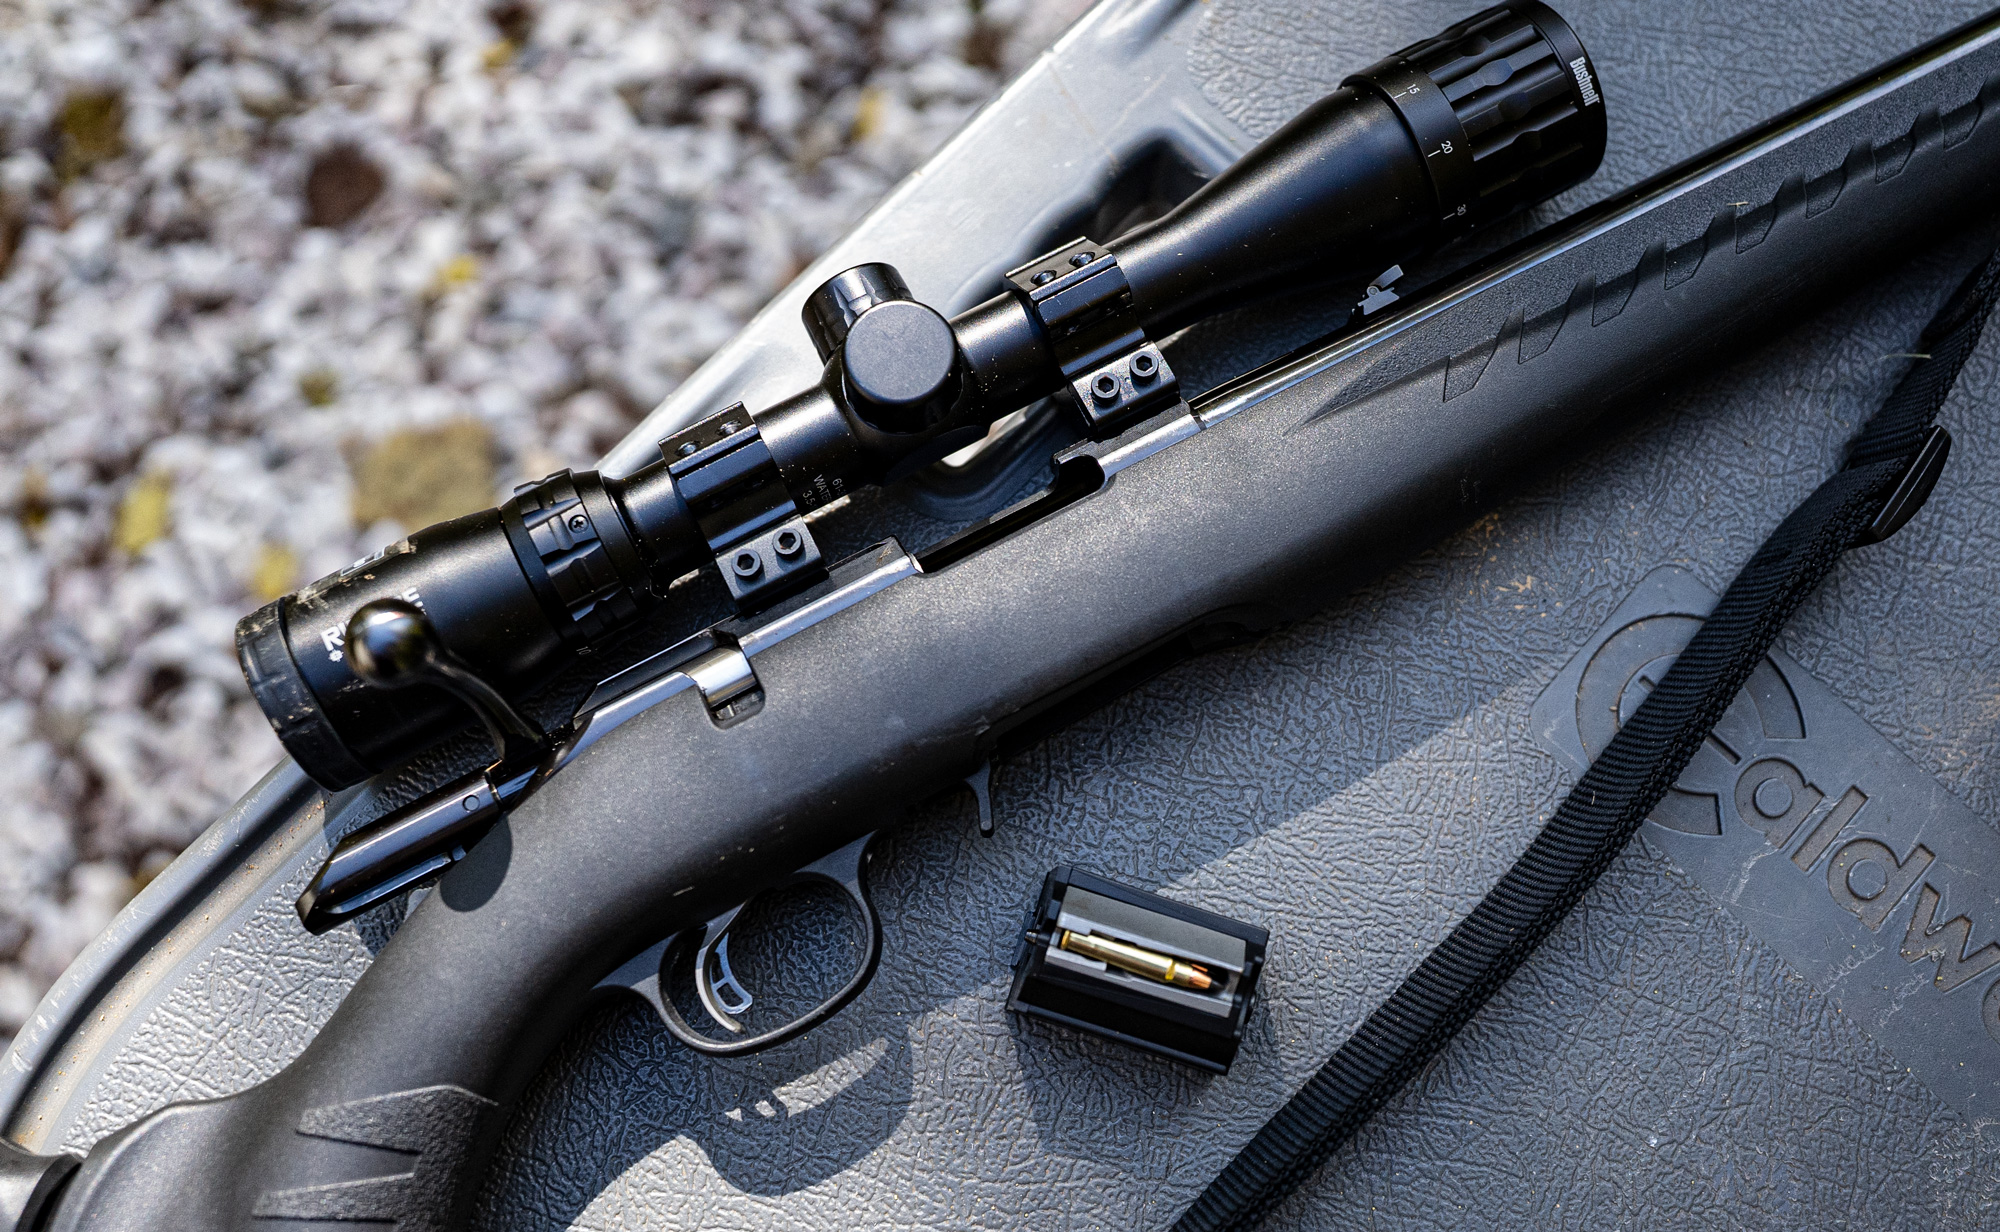 17 HMR rifle and ammo on a shooting bench